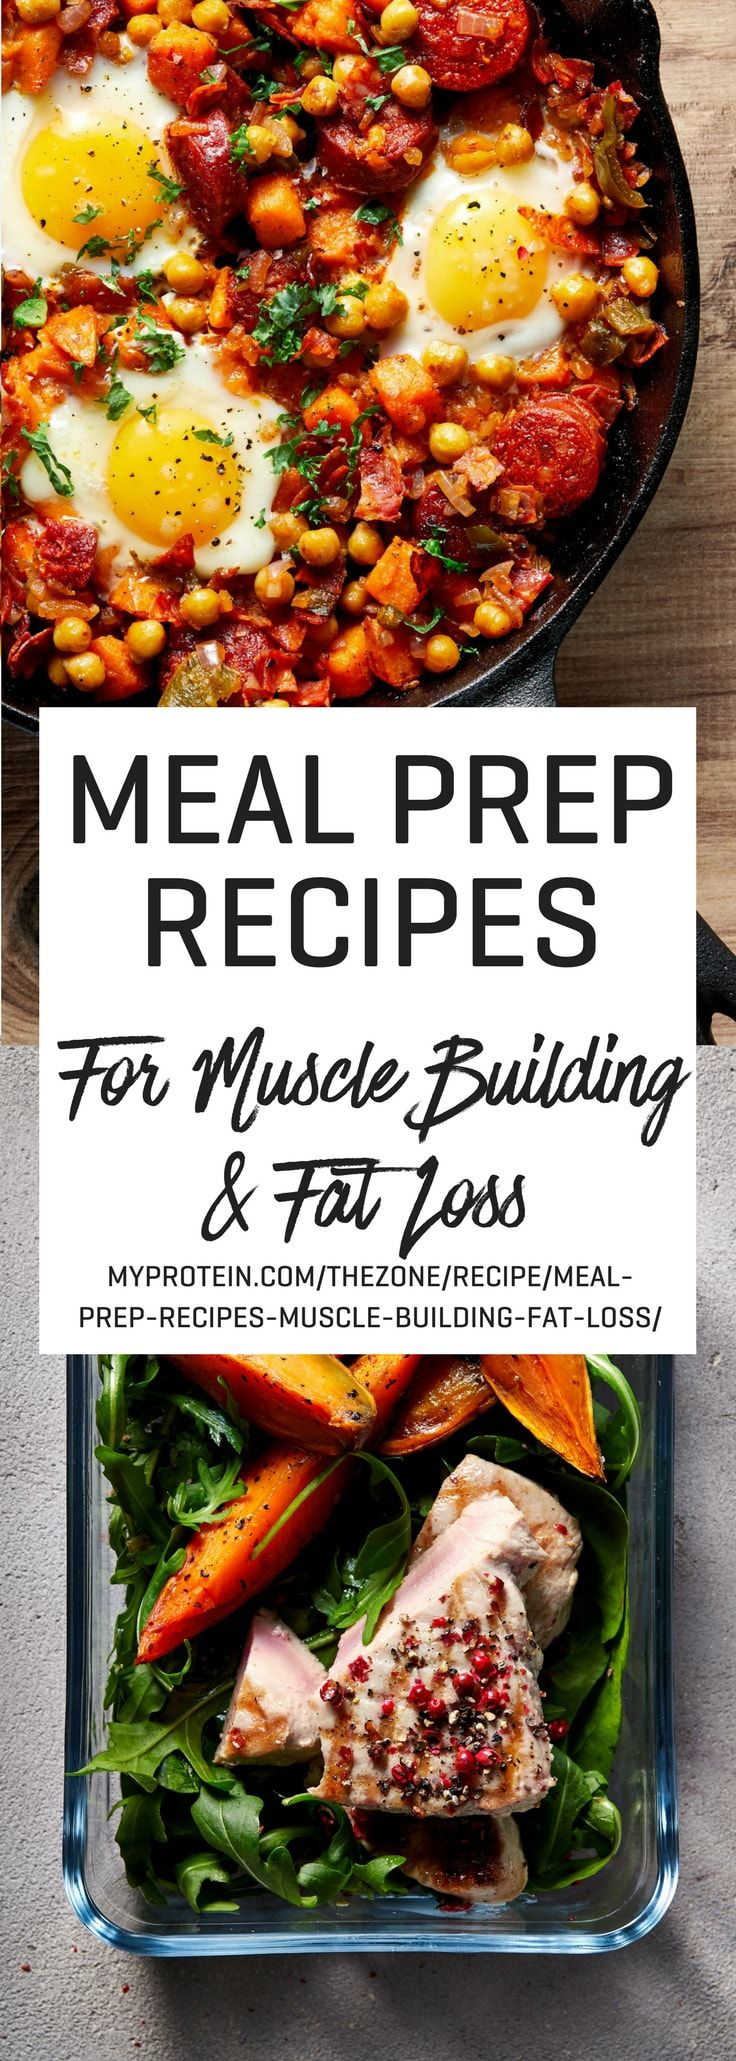 22 Meal Prep Recipes For Muscle Building & Fat Loss #mealprepplans